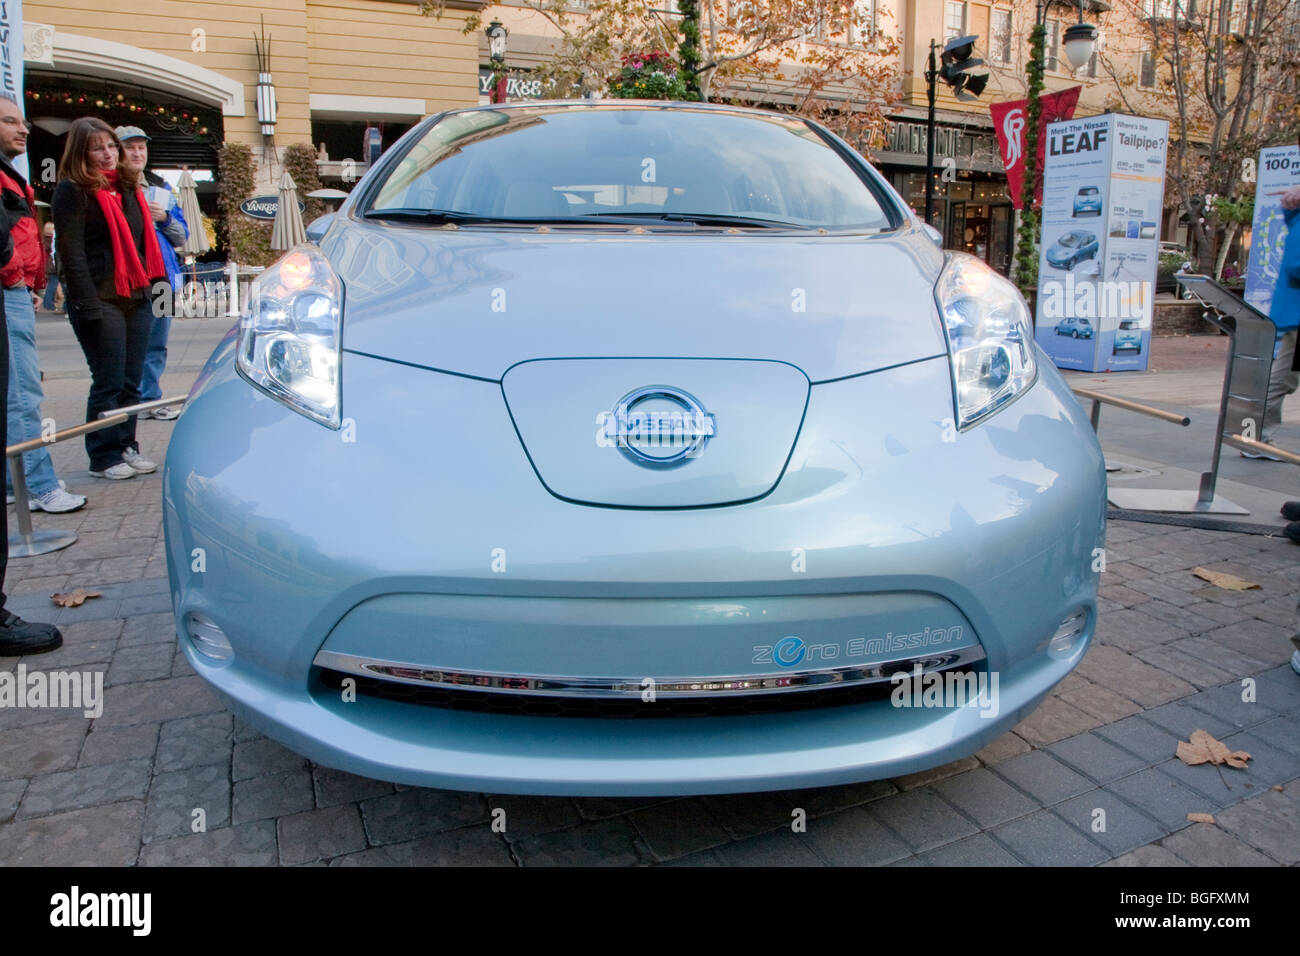 Nissan Leaf Zero Emission Tour Promotional Event. Santana Row, San Jose,  California, USA, 12/5/09